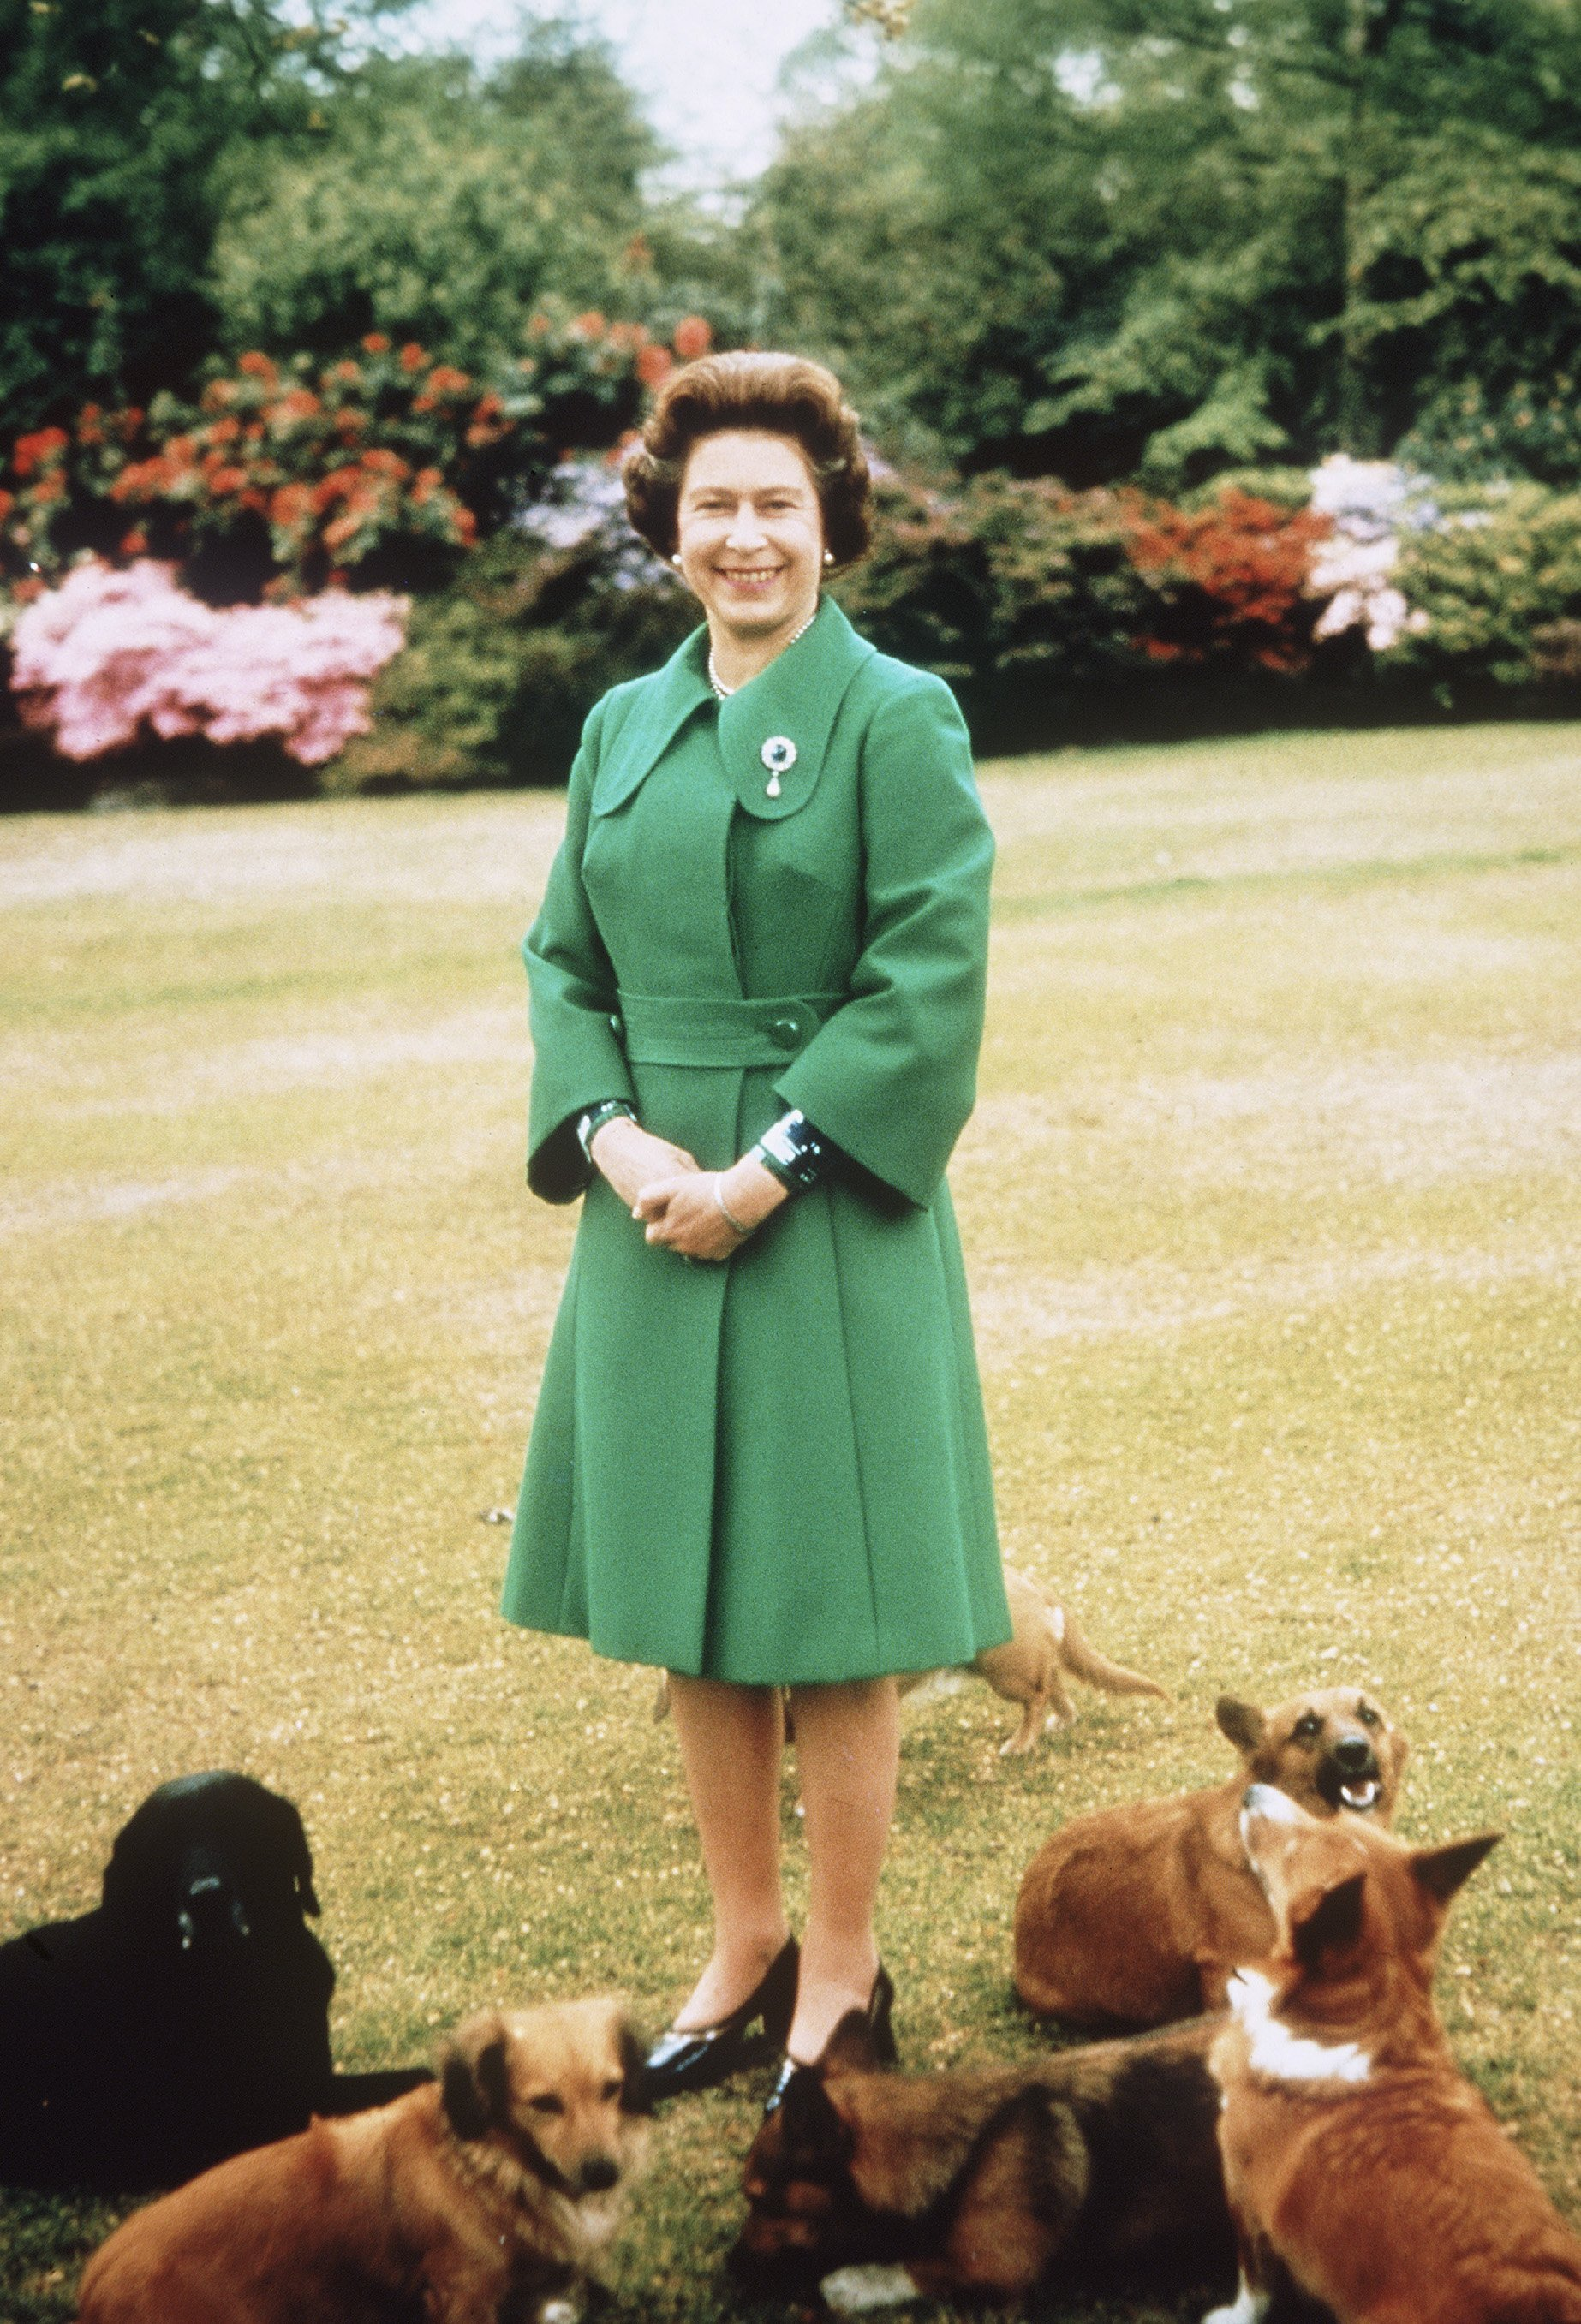 Queen Elizabeth II relaxes at Sandringham with her corgis on an unspecified date. | Source: Getty Images.